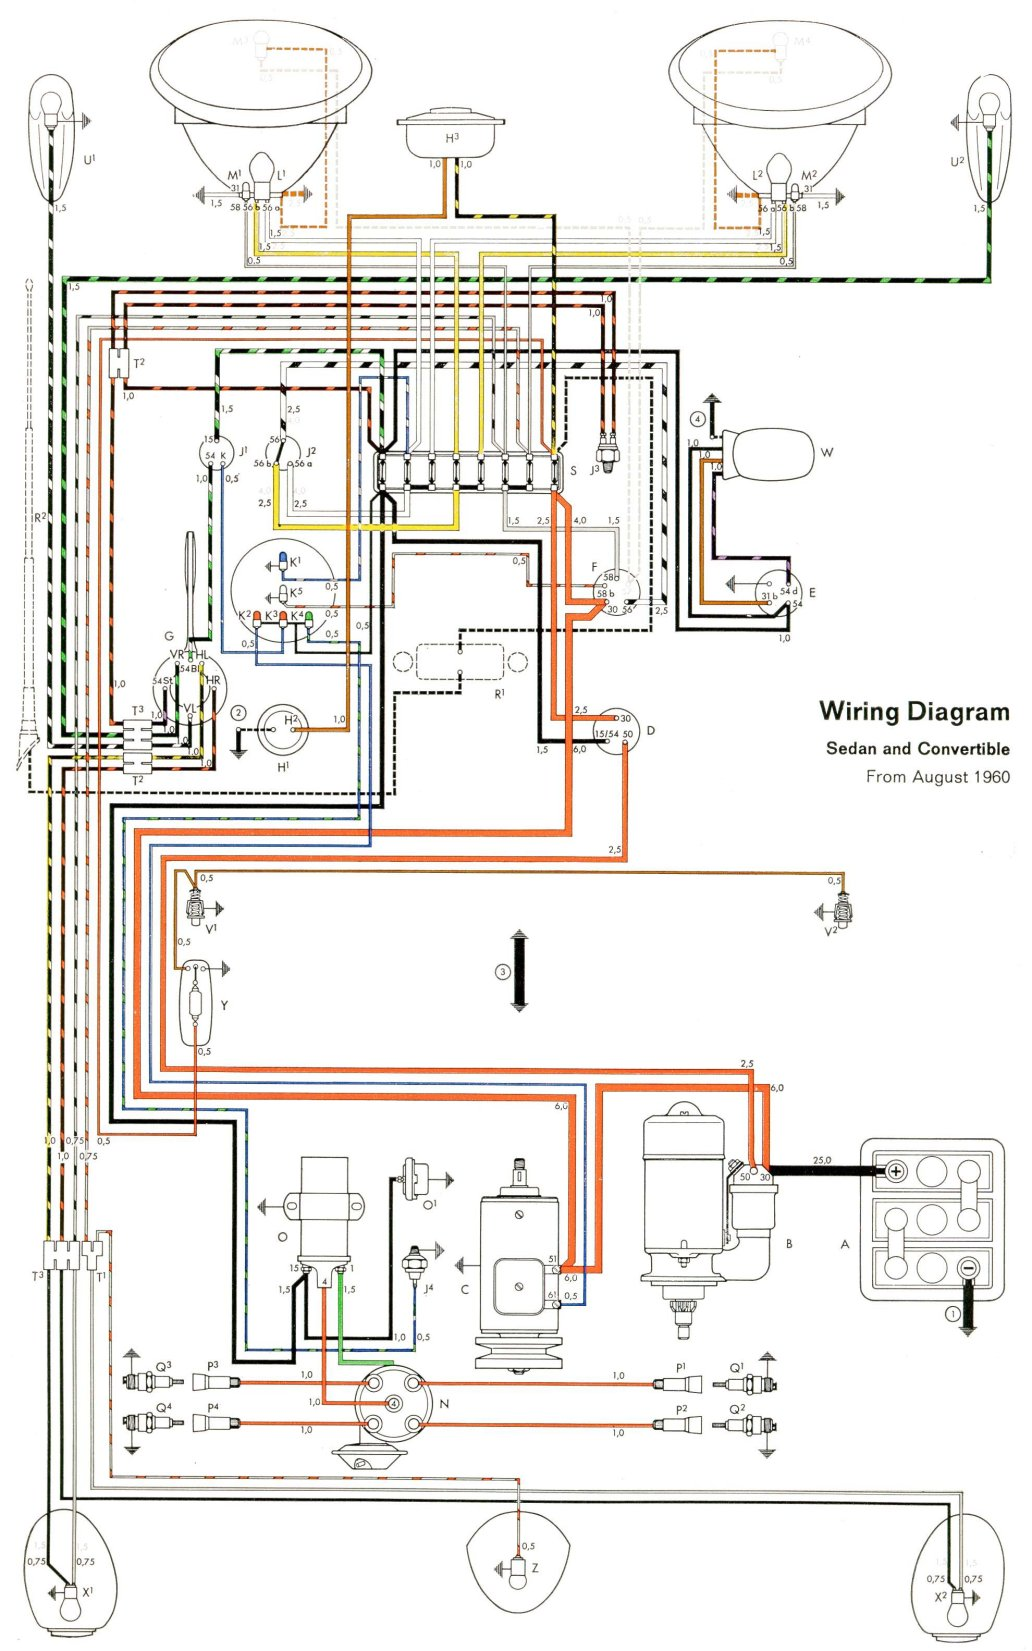 bug_61 european wiring diagram hyundai sonata wiring diagram \u2022 free vw wiring diagram symbols at creativeand.co